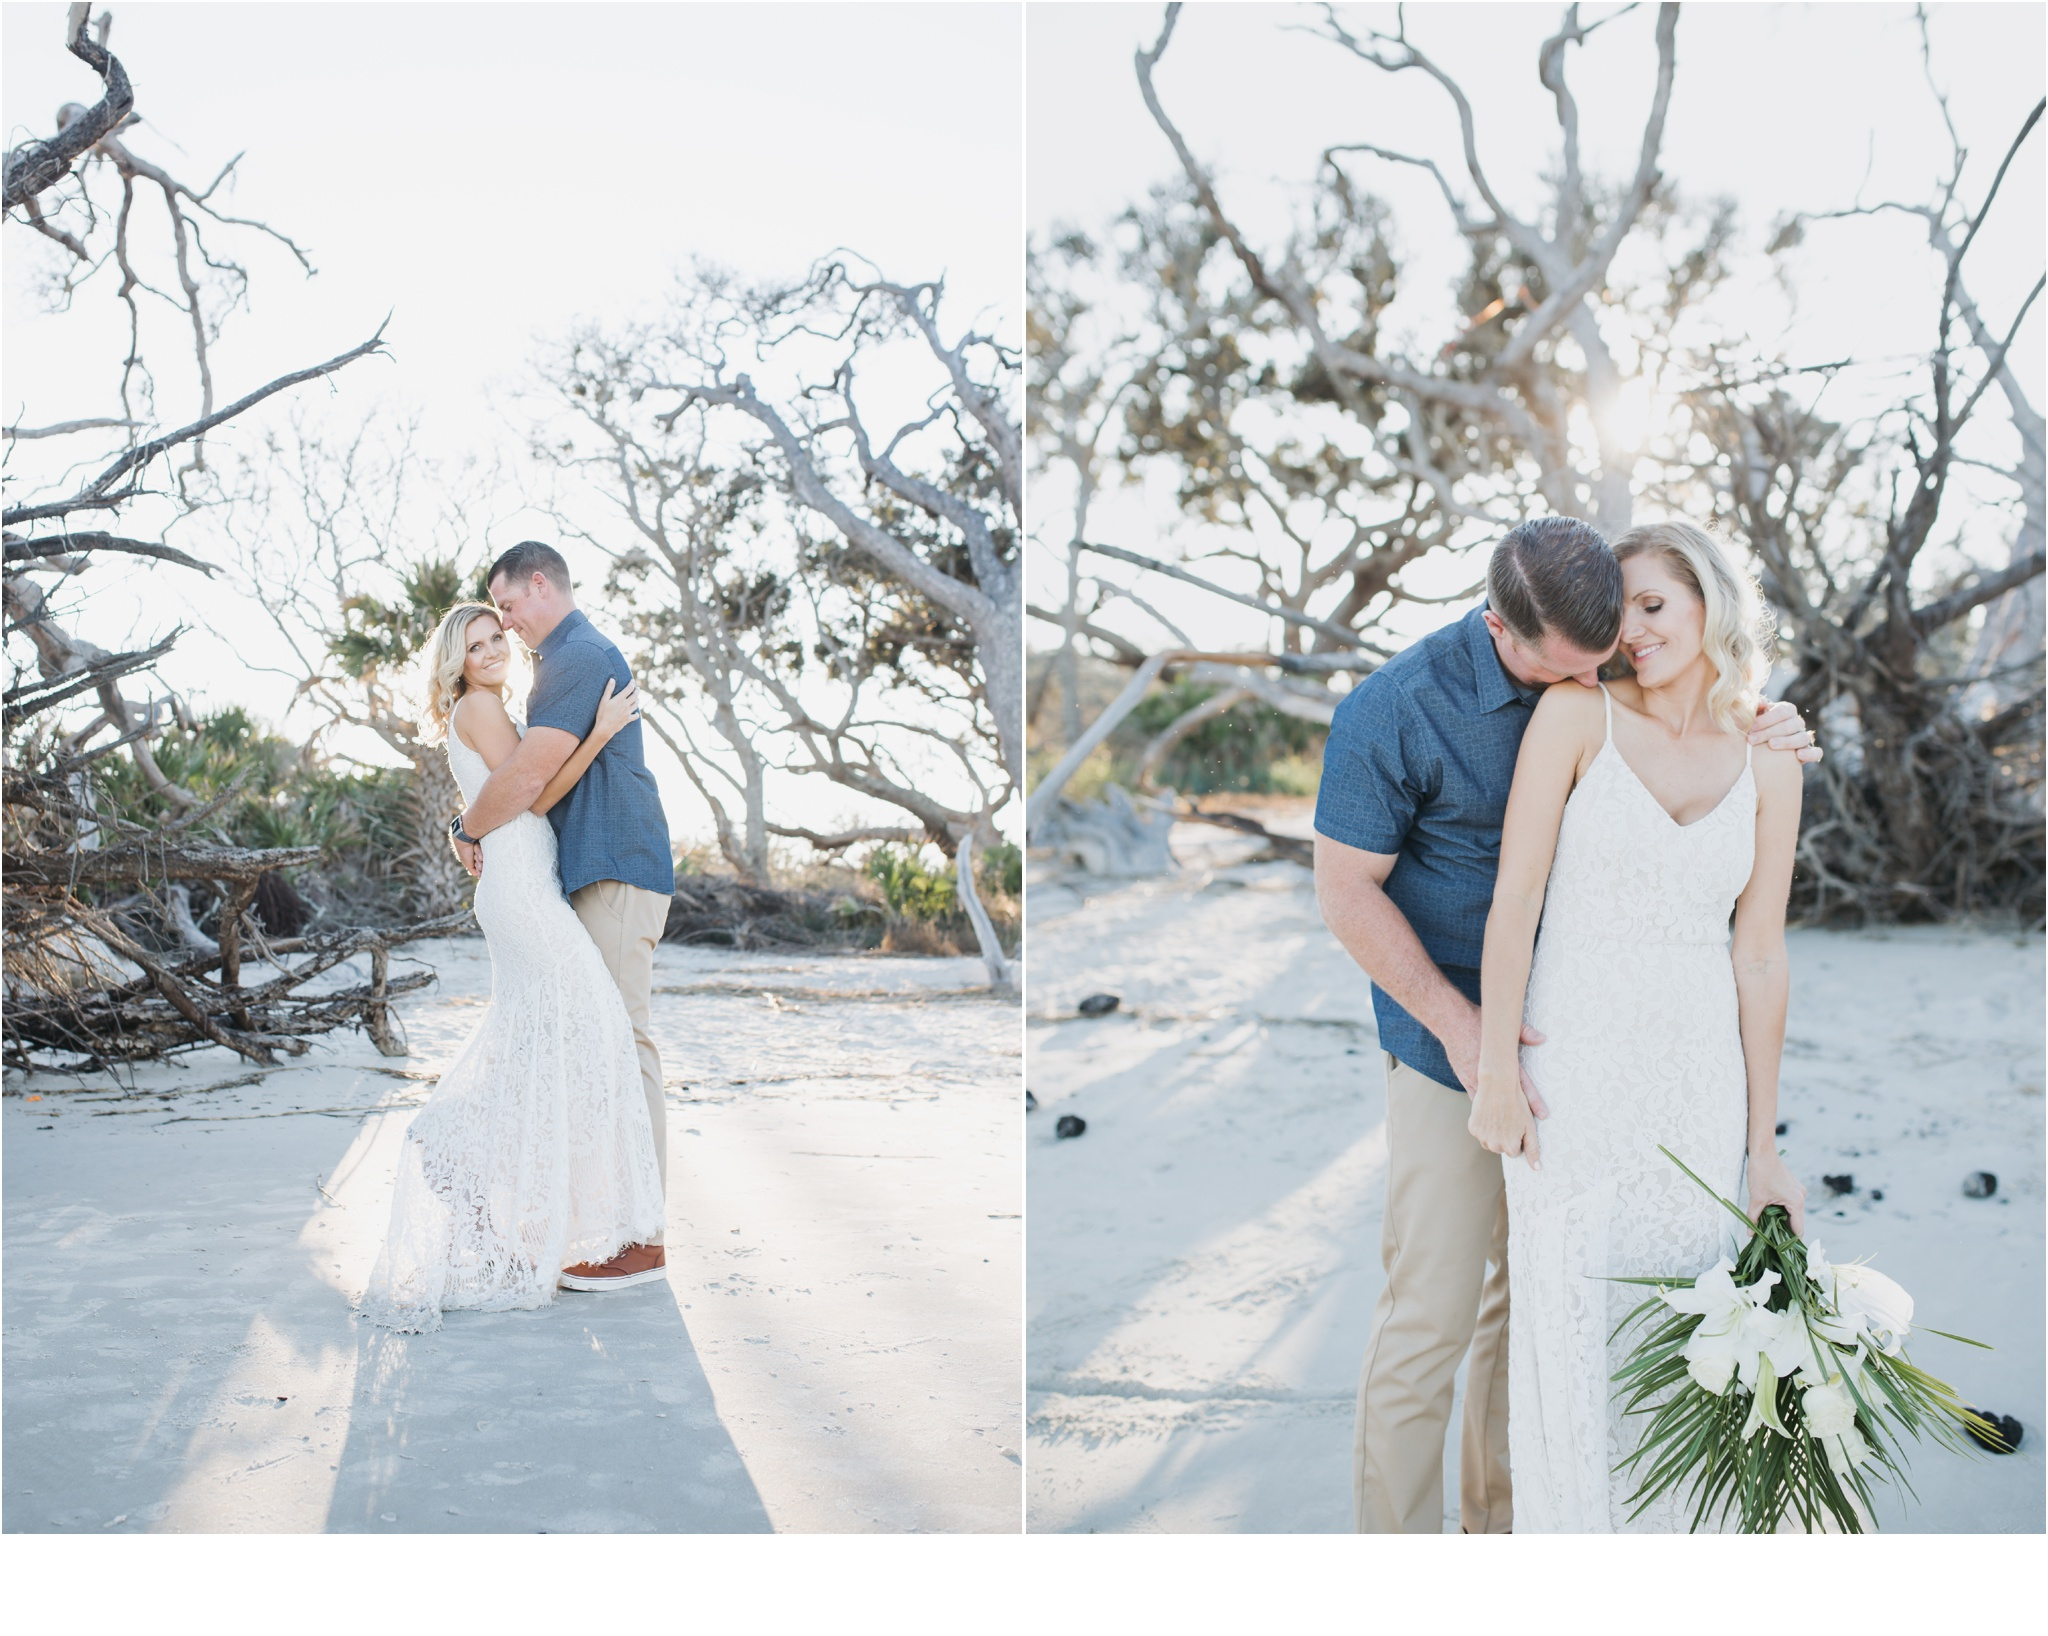 Rainey_Gregg_Photography_St._Simons_Island_Georgia_California_Wedding_Portrait_Photography_1577.jpg